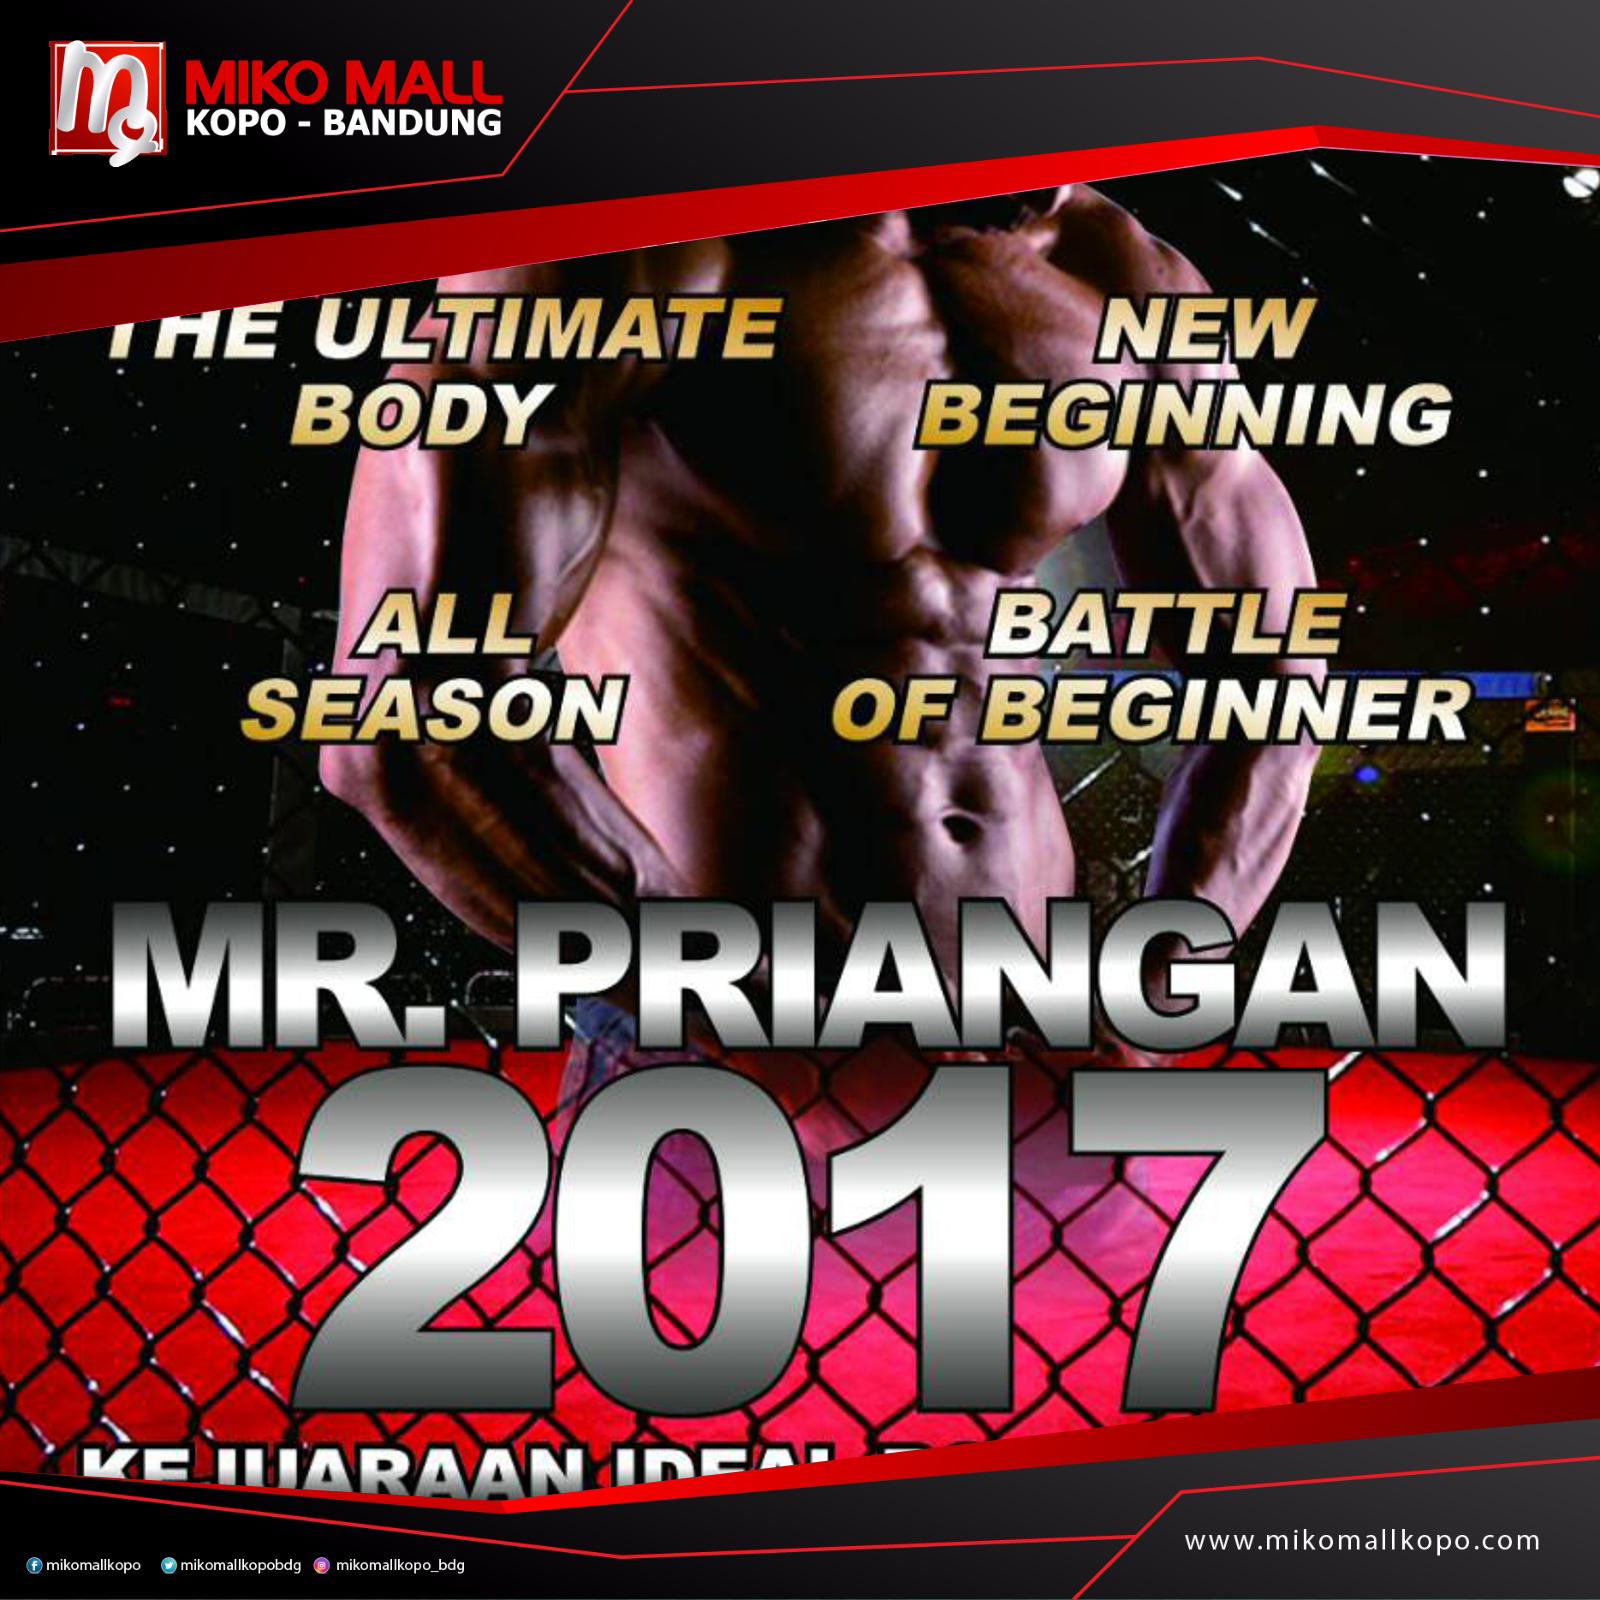 IDEAL BODY CONTEST – MISTER PRIANGAN